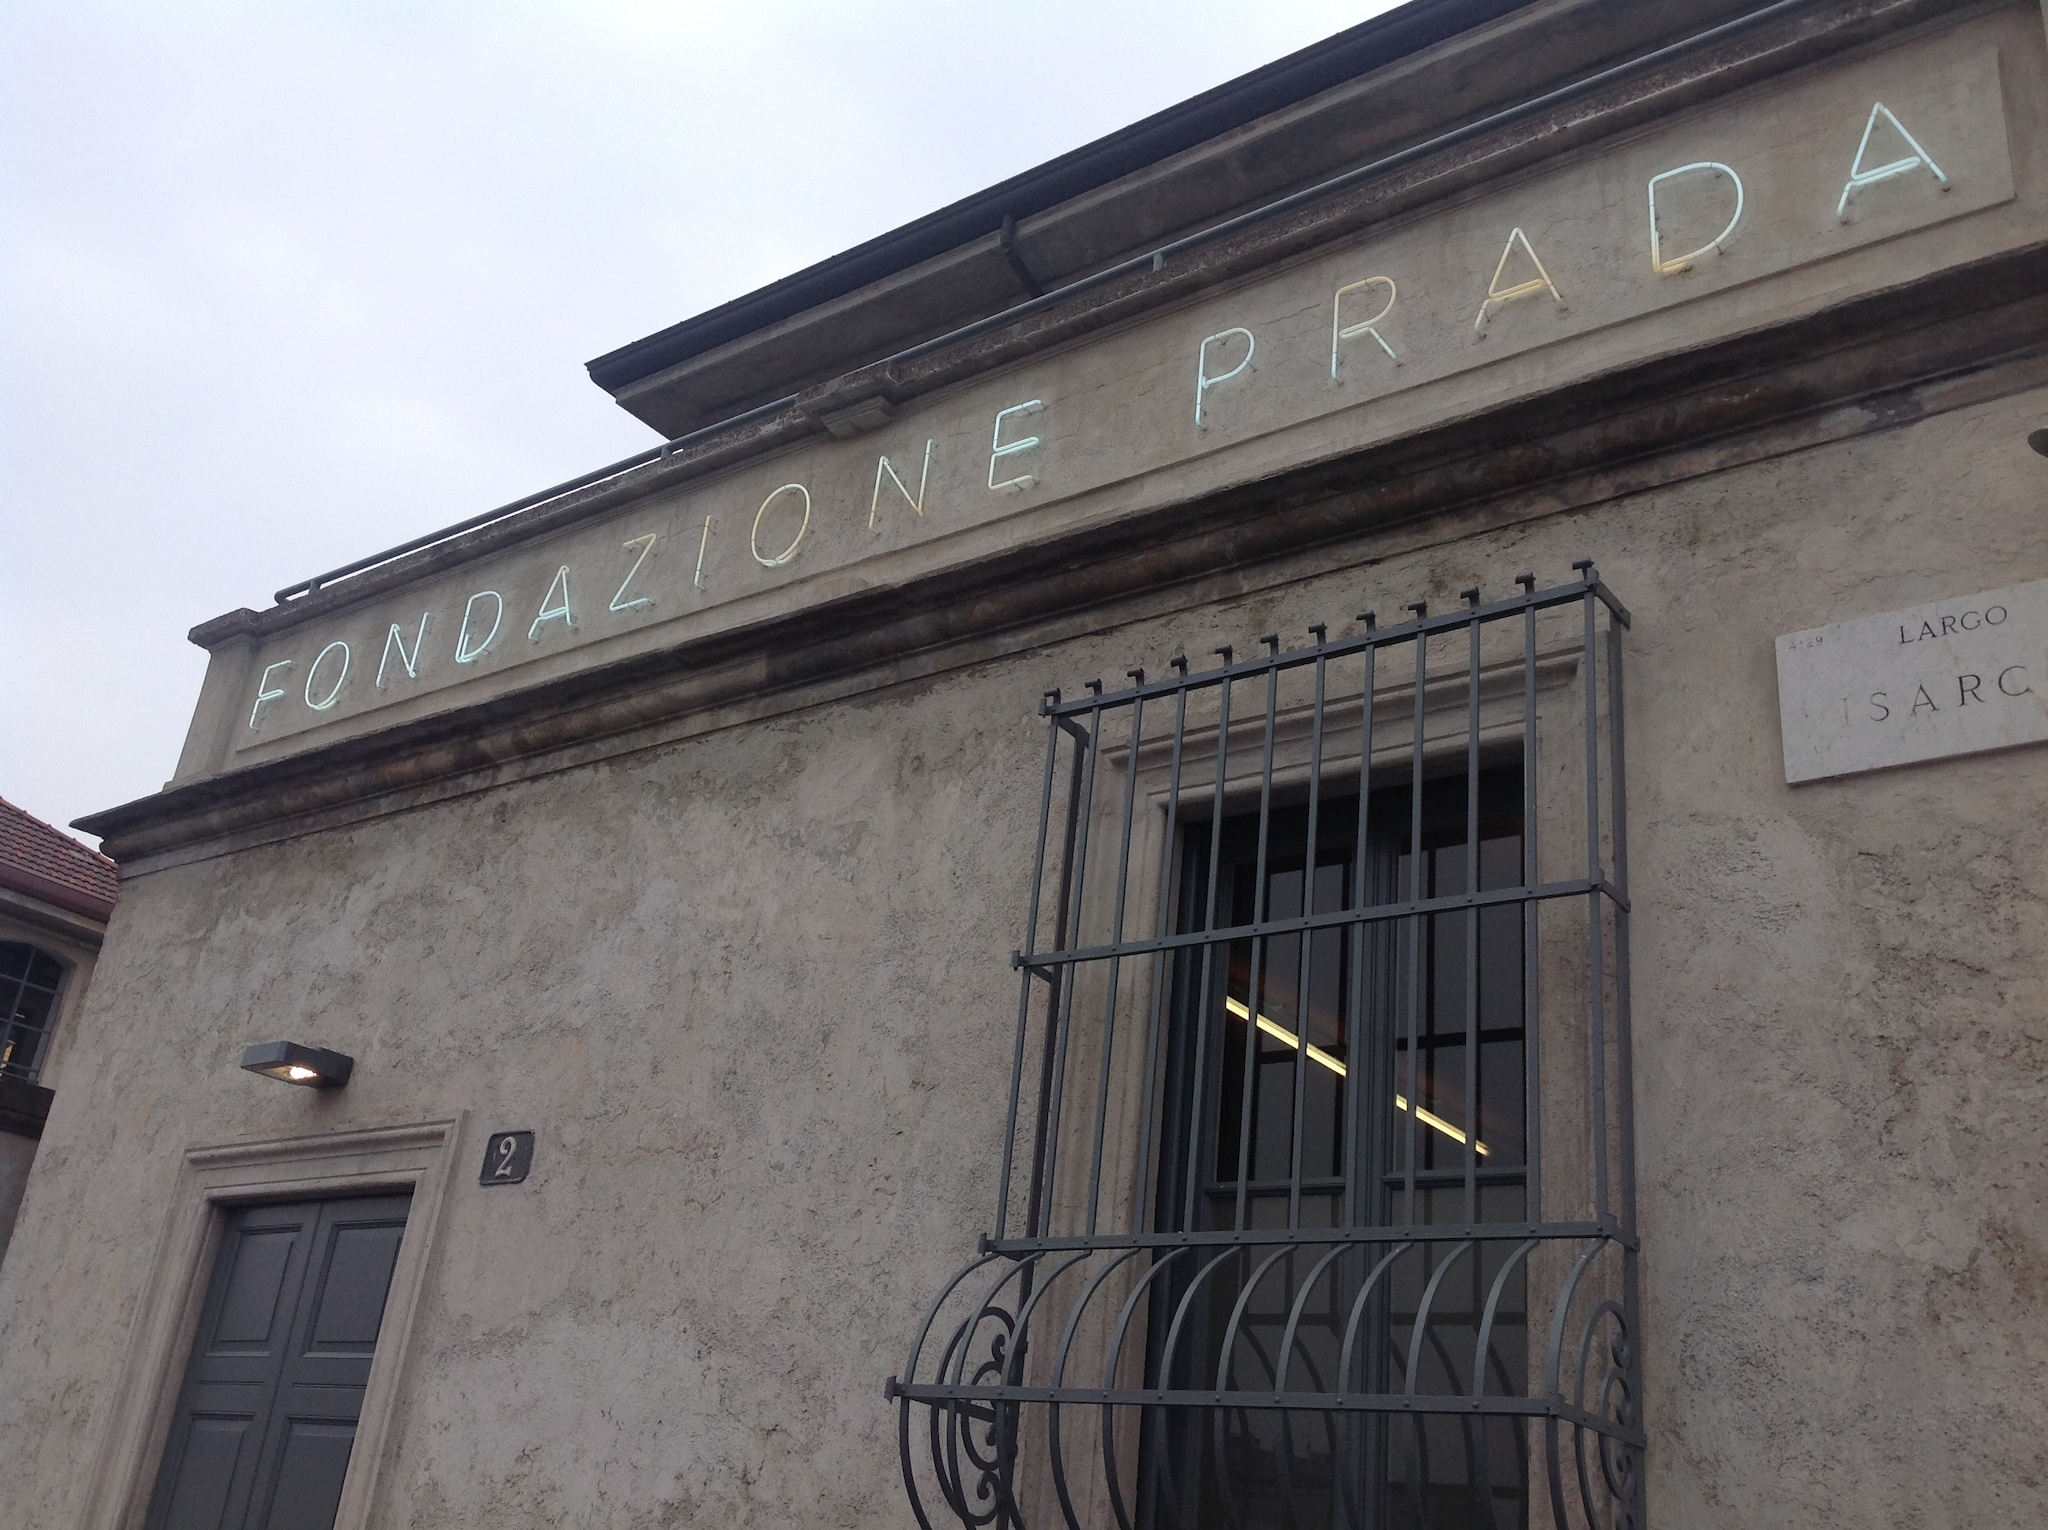 The new Fondazione Prada facility in Milan